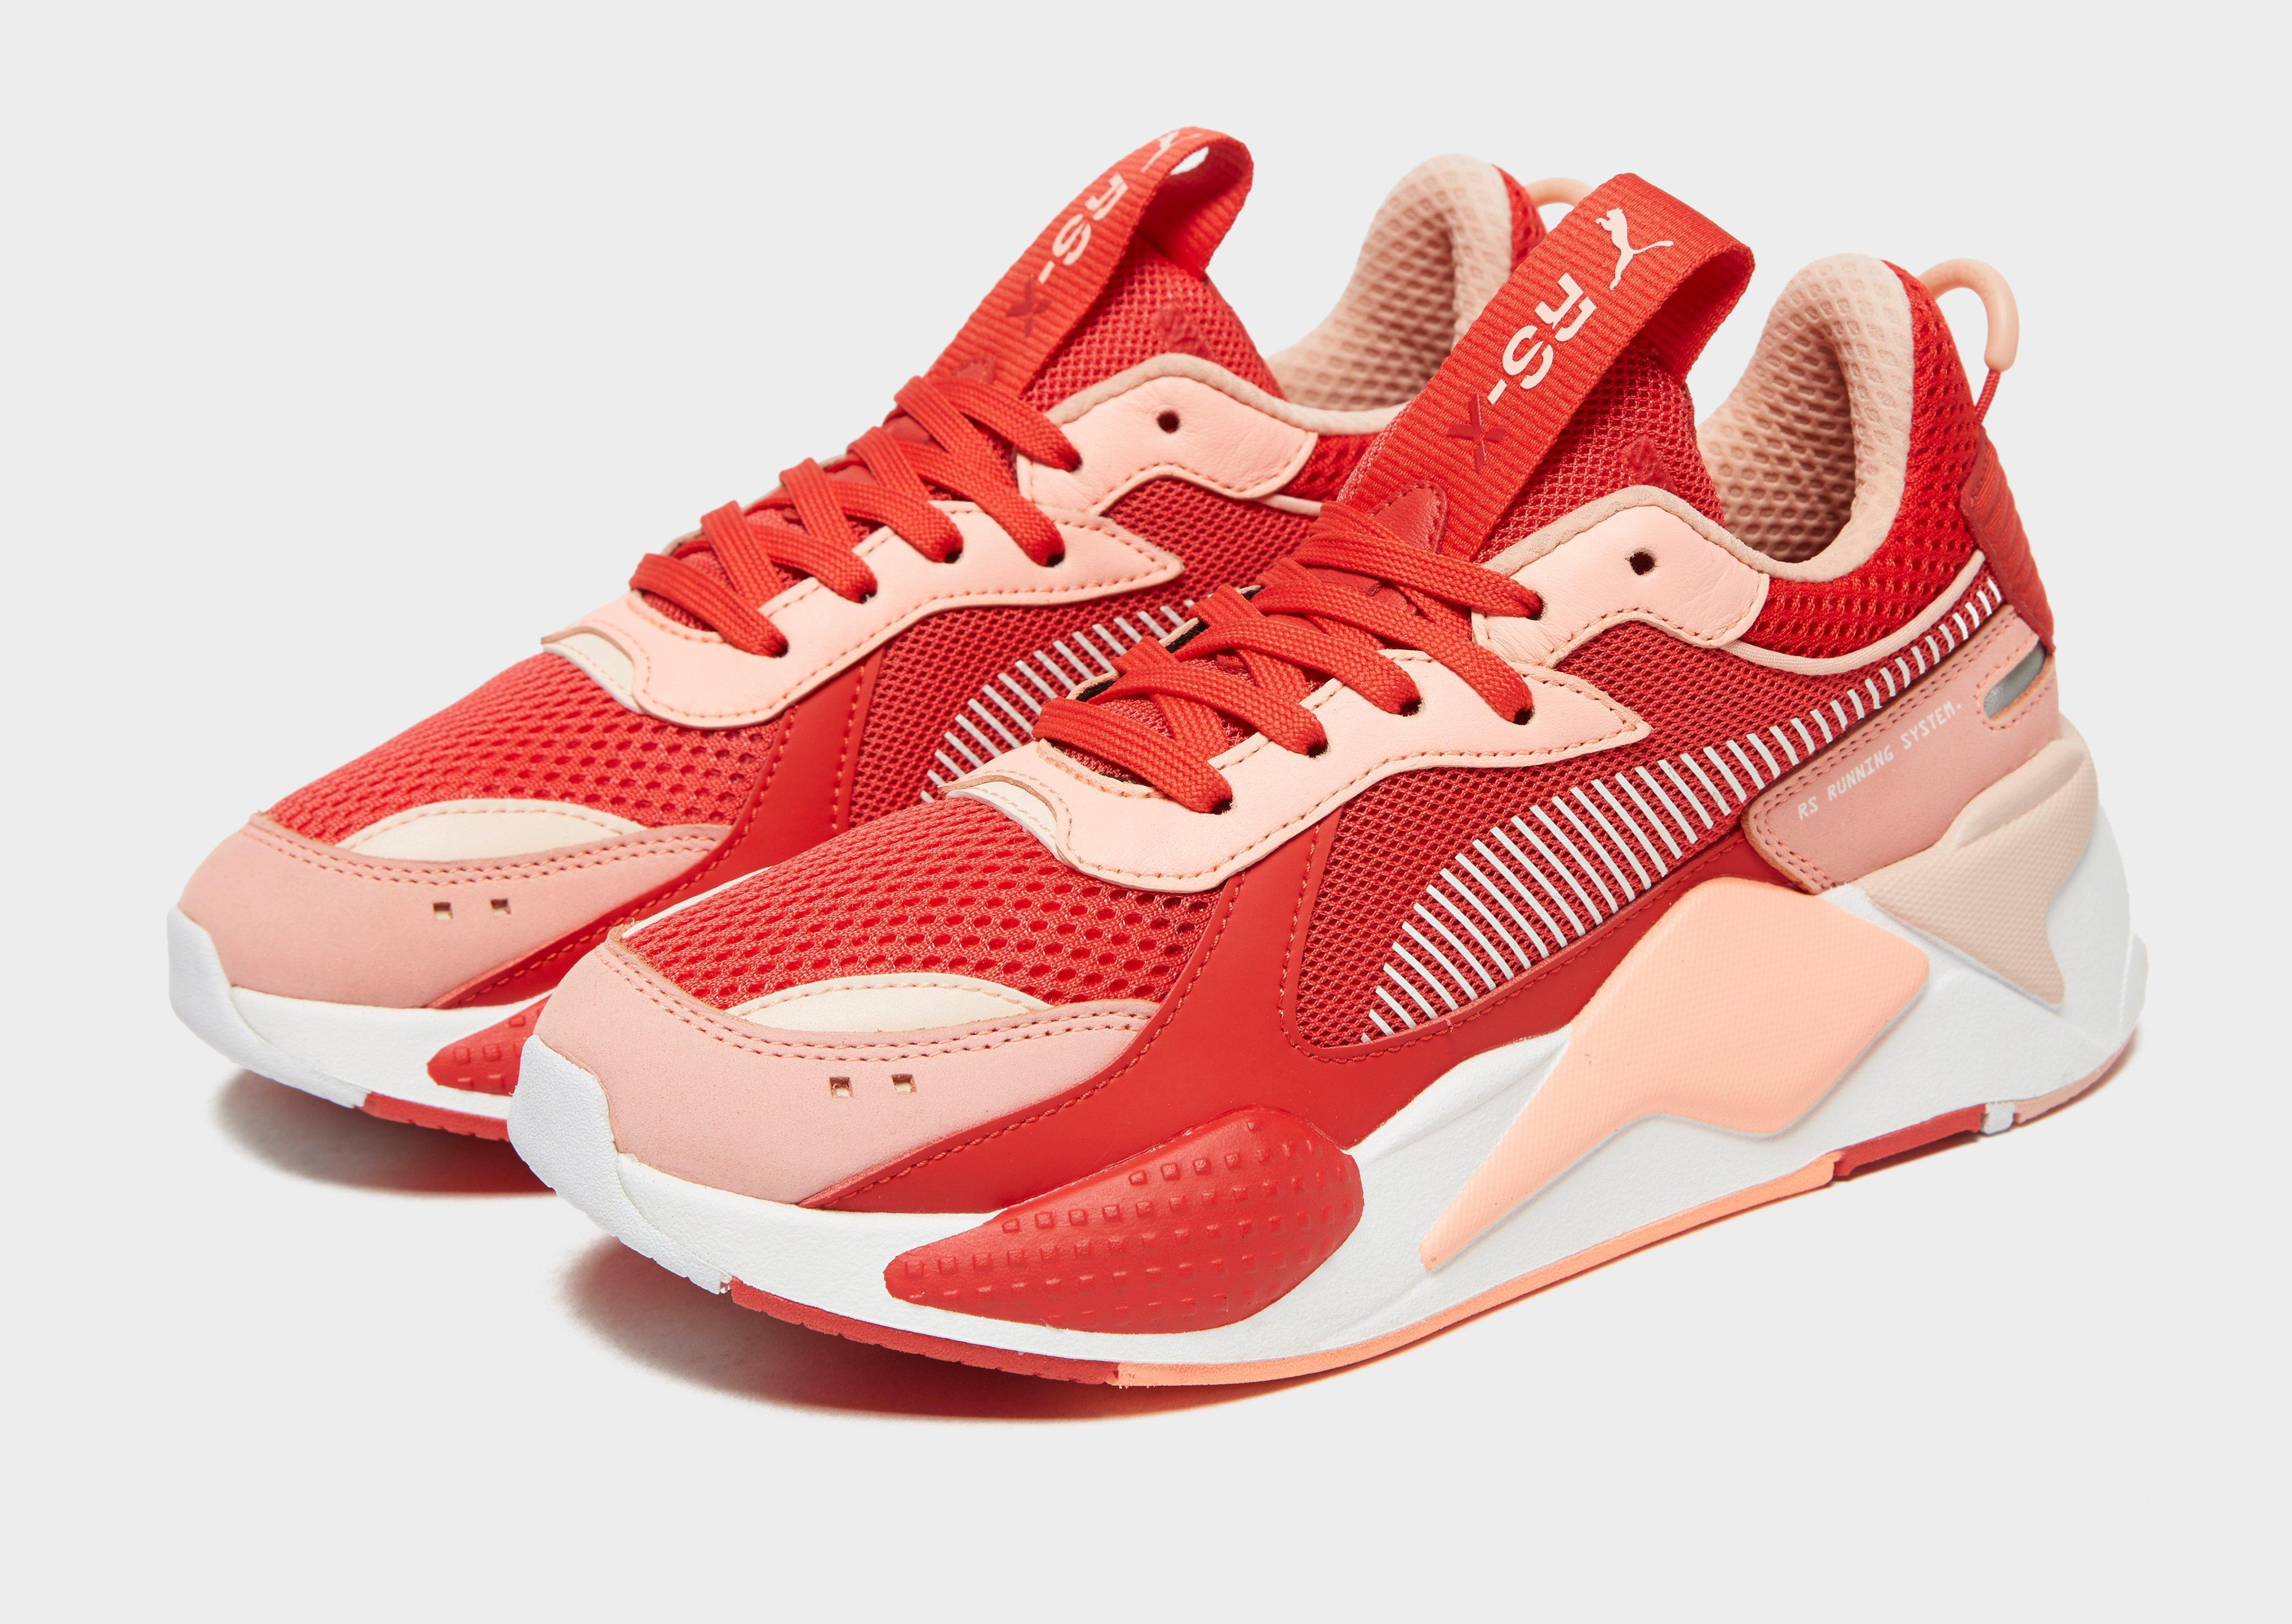 PUMA Rubber Rs-x Toys in Red/Pink (Red